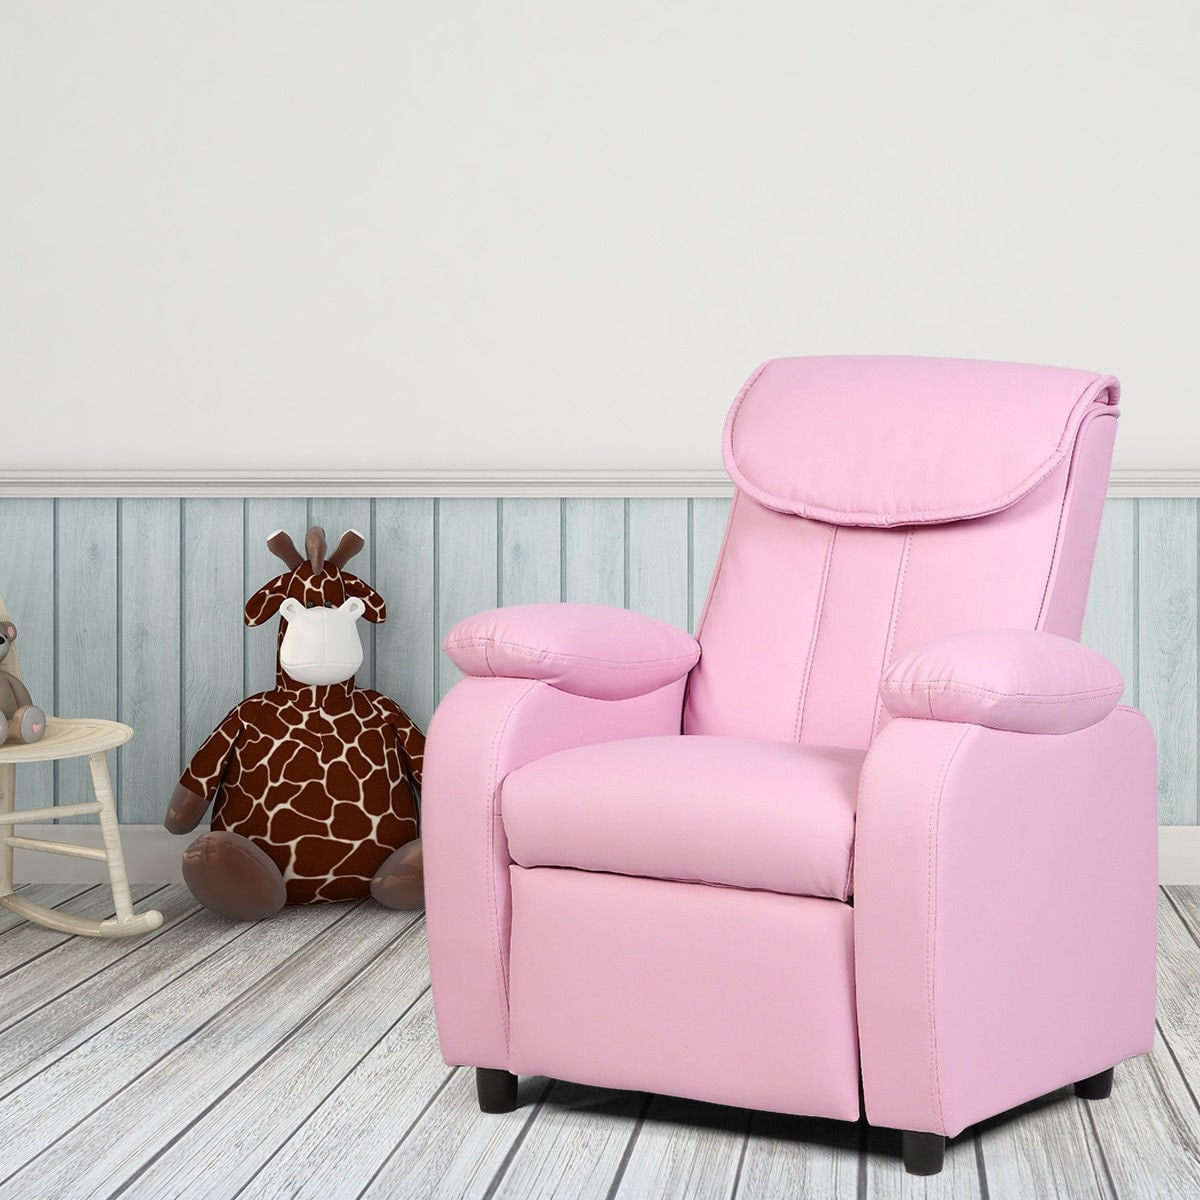 Costway Kid Recliner Sofa Armrest Chair Couch Children Living Room  Furniture Home Pink